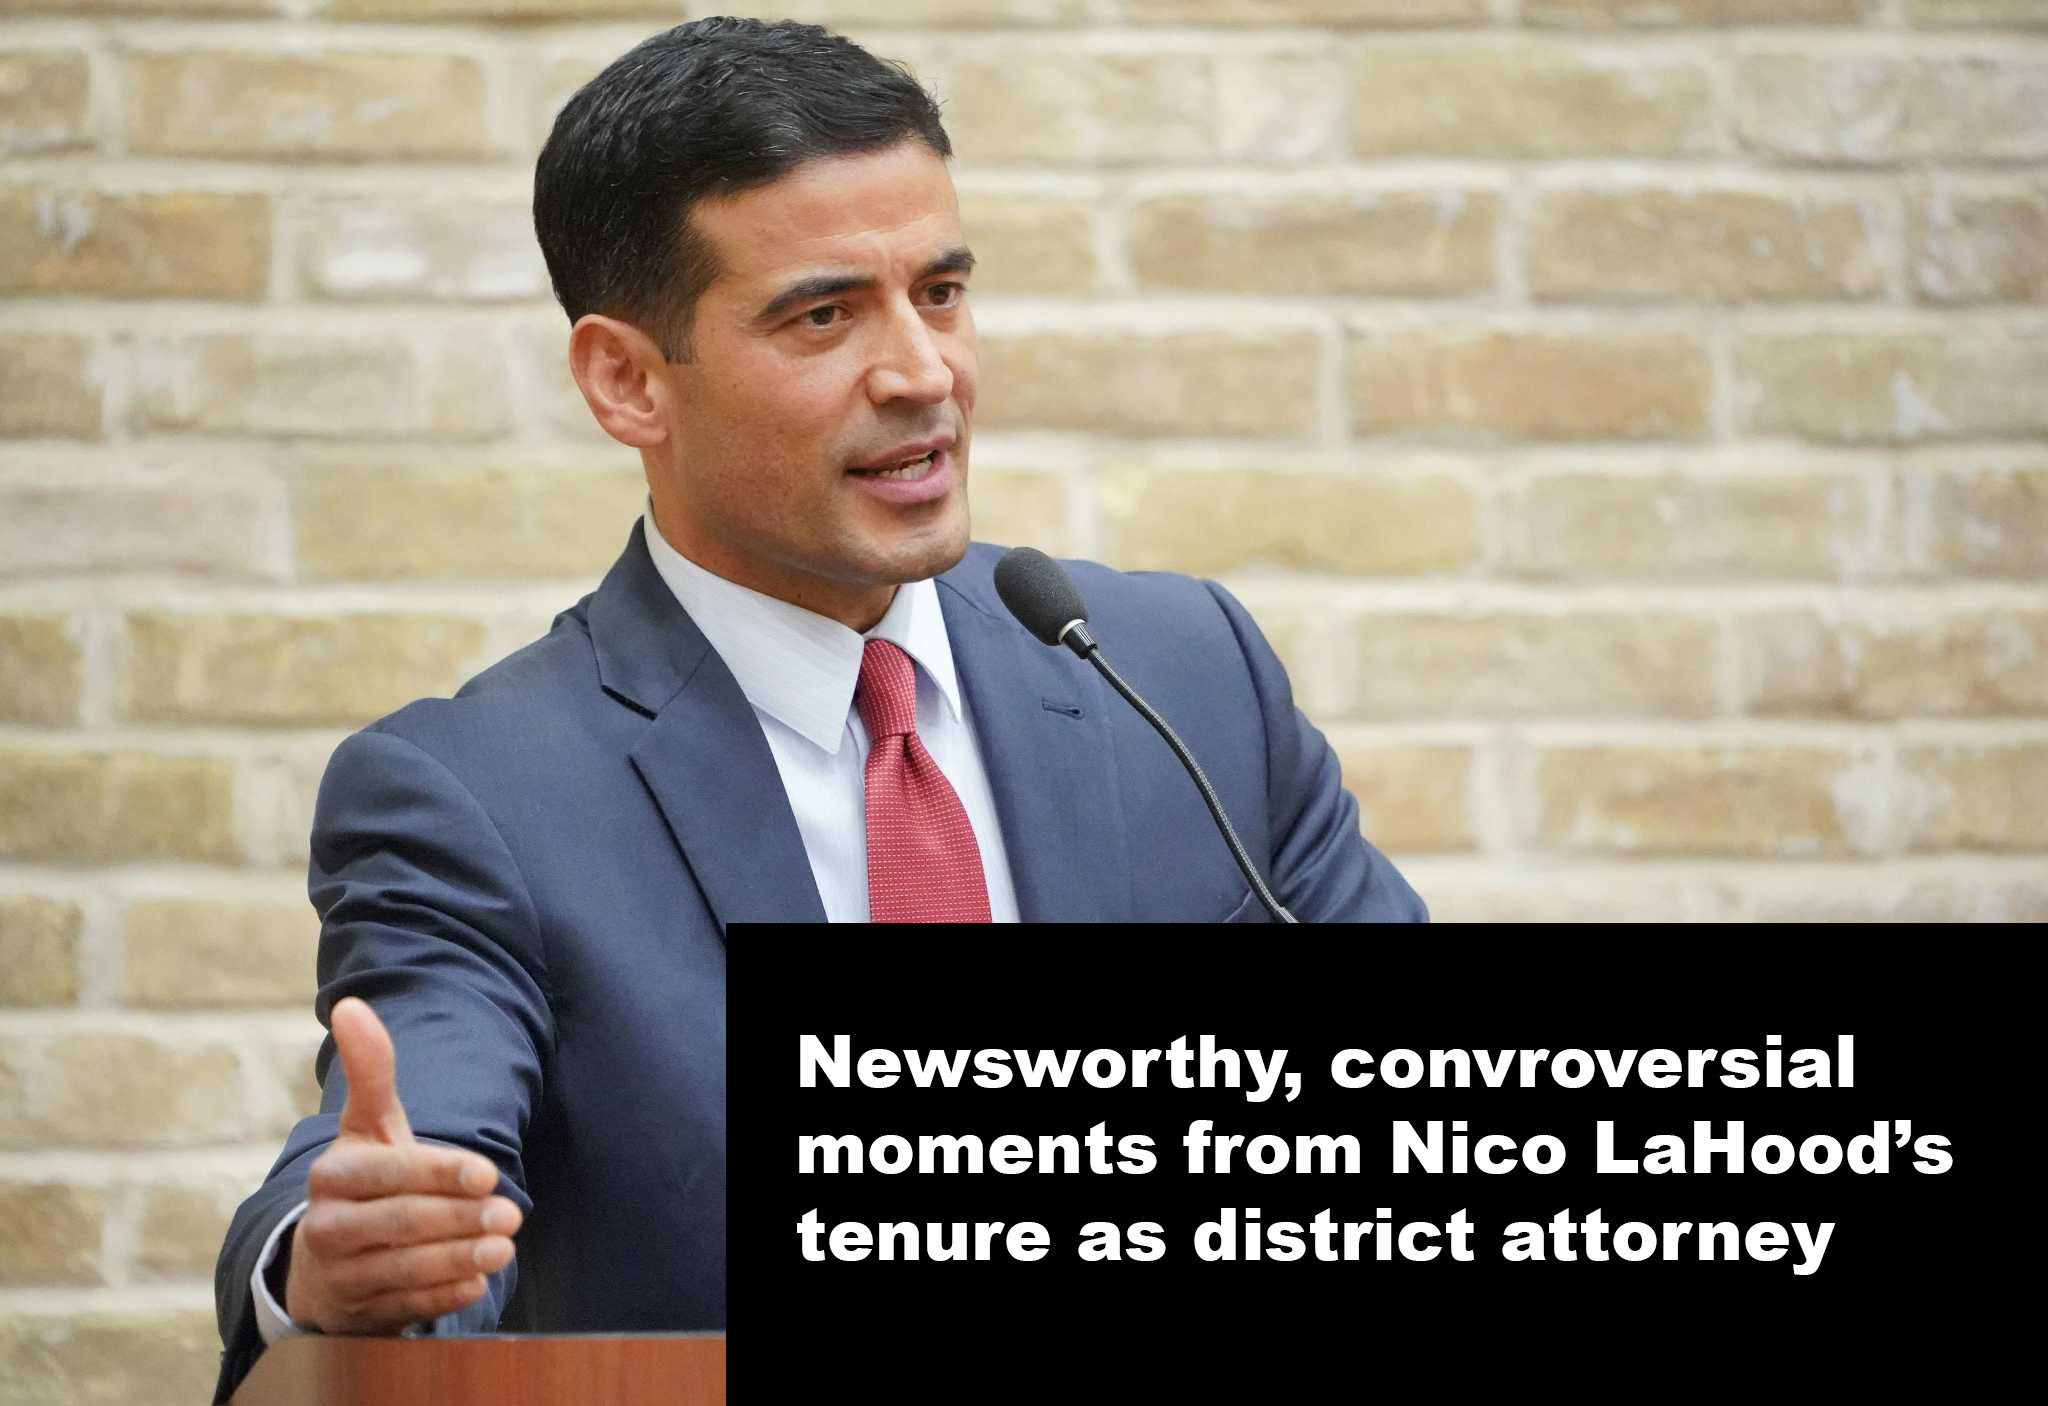 Controversial moments from Nico LaHood's tenure as Bexar